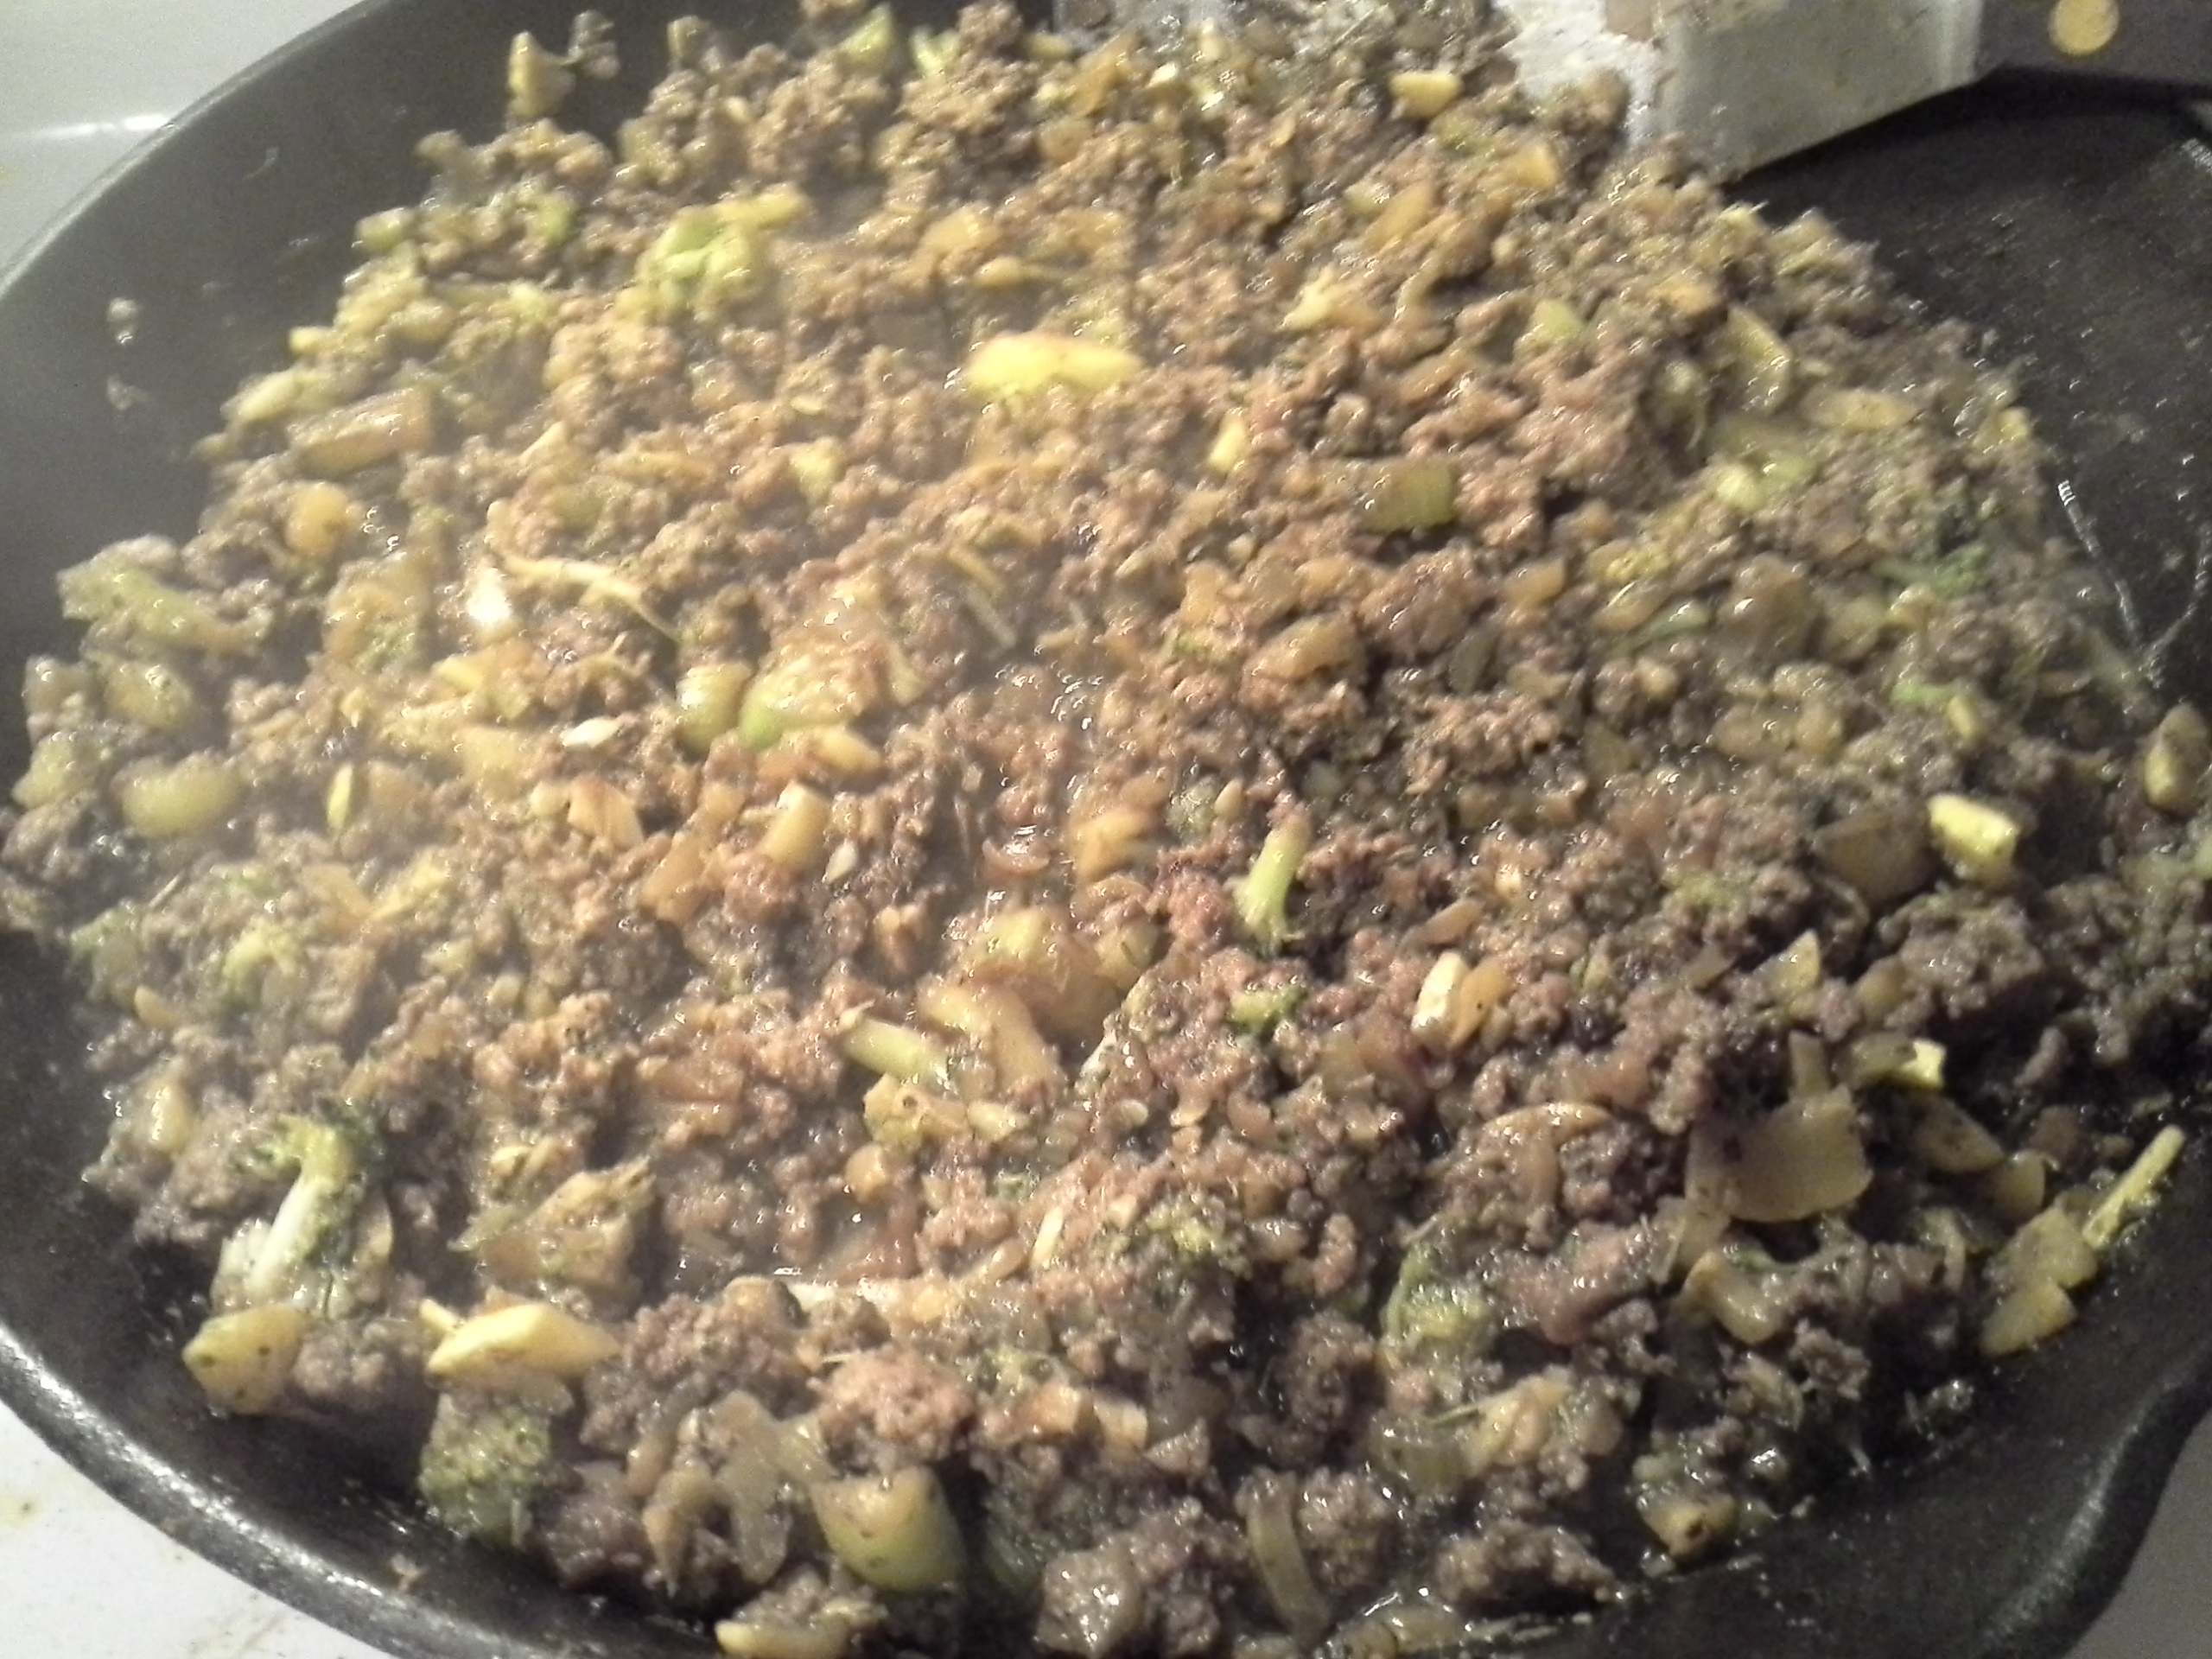 Dinner: 8:45 p.m. | 8 oz. ground beef, 1/6 bunch broccoli, 1 1/2 stalks celery, 1/2 yellow squash, 1/2 sweet onion, 4 cloves garlic, 2 Tbsp. coconut oil, herbs & spices